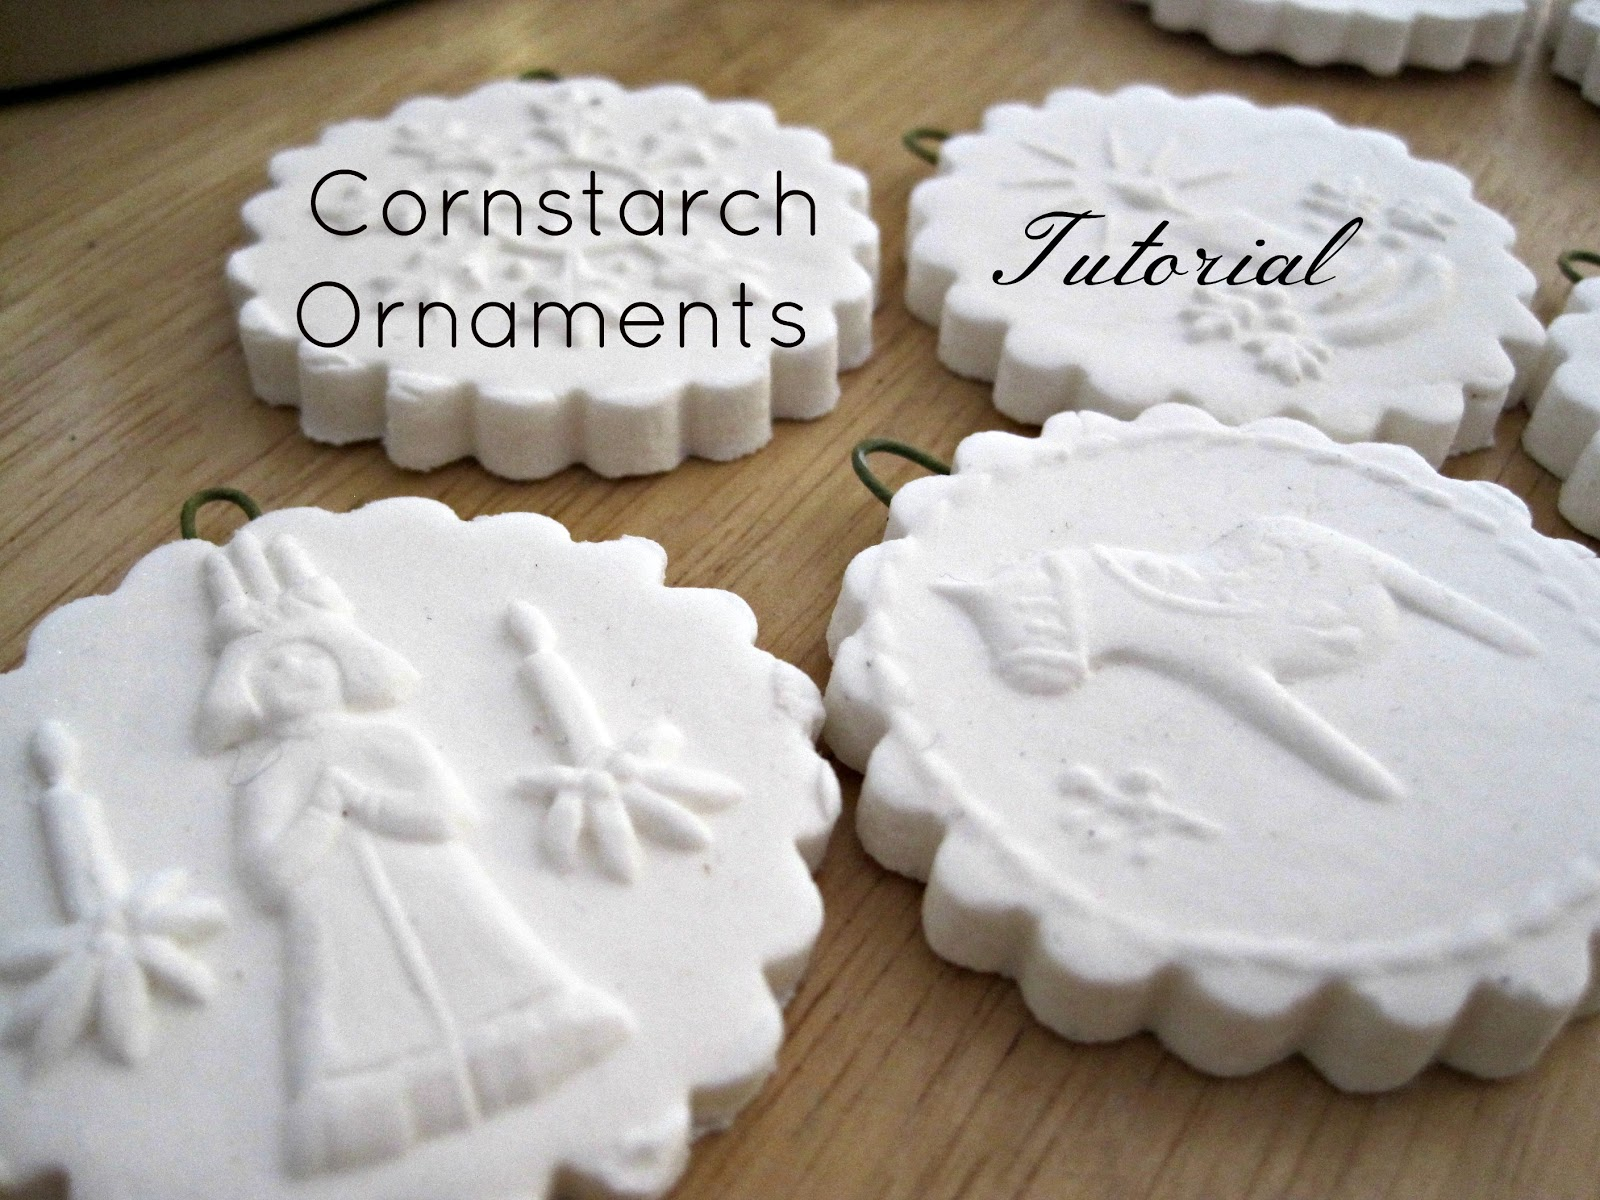 When My Mom Gave Me Her Swedish Cookie Stamps, I Started Brainstorming Ways  To Make Ornaments With Them I Began Researching Different Types Of  Preservable